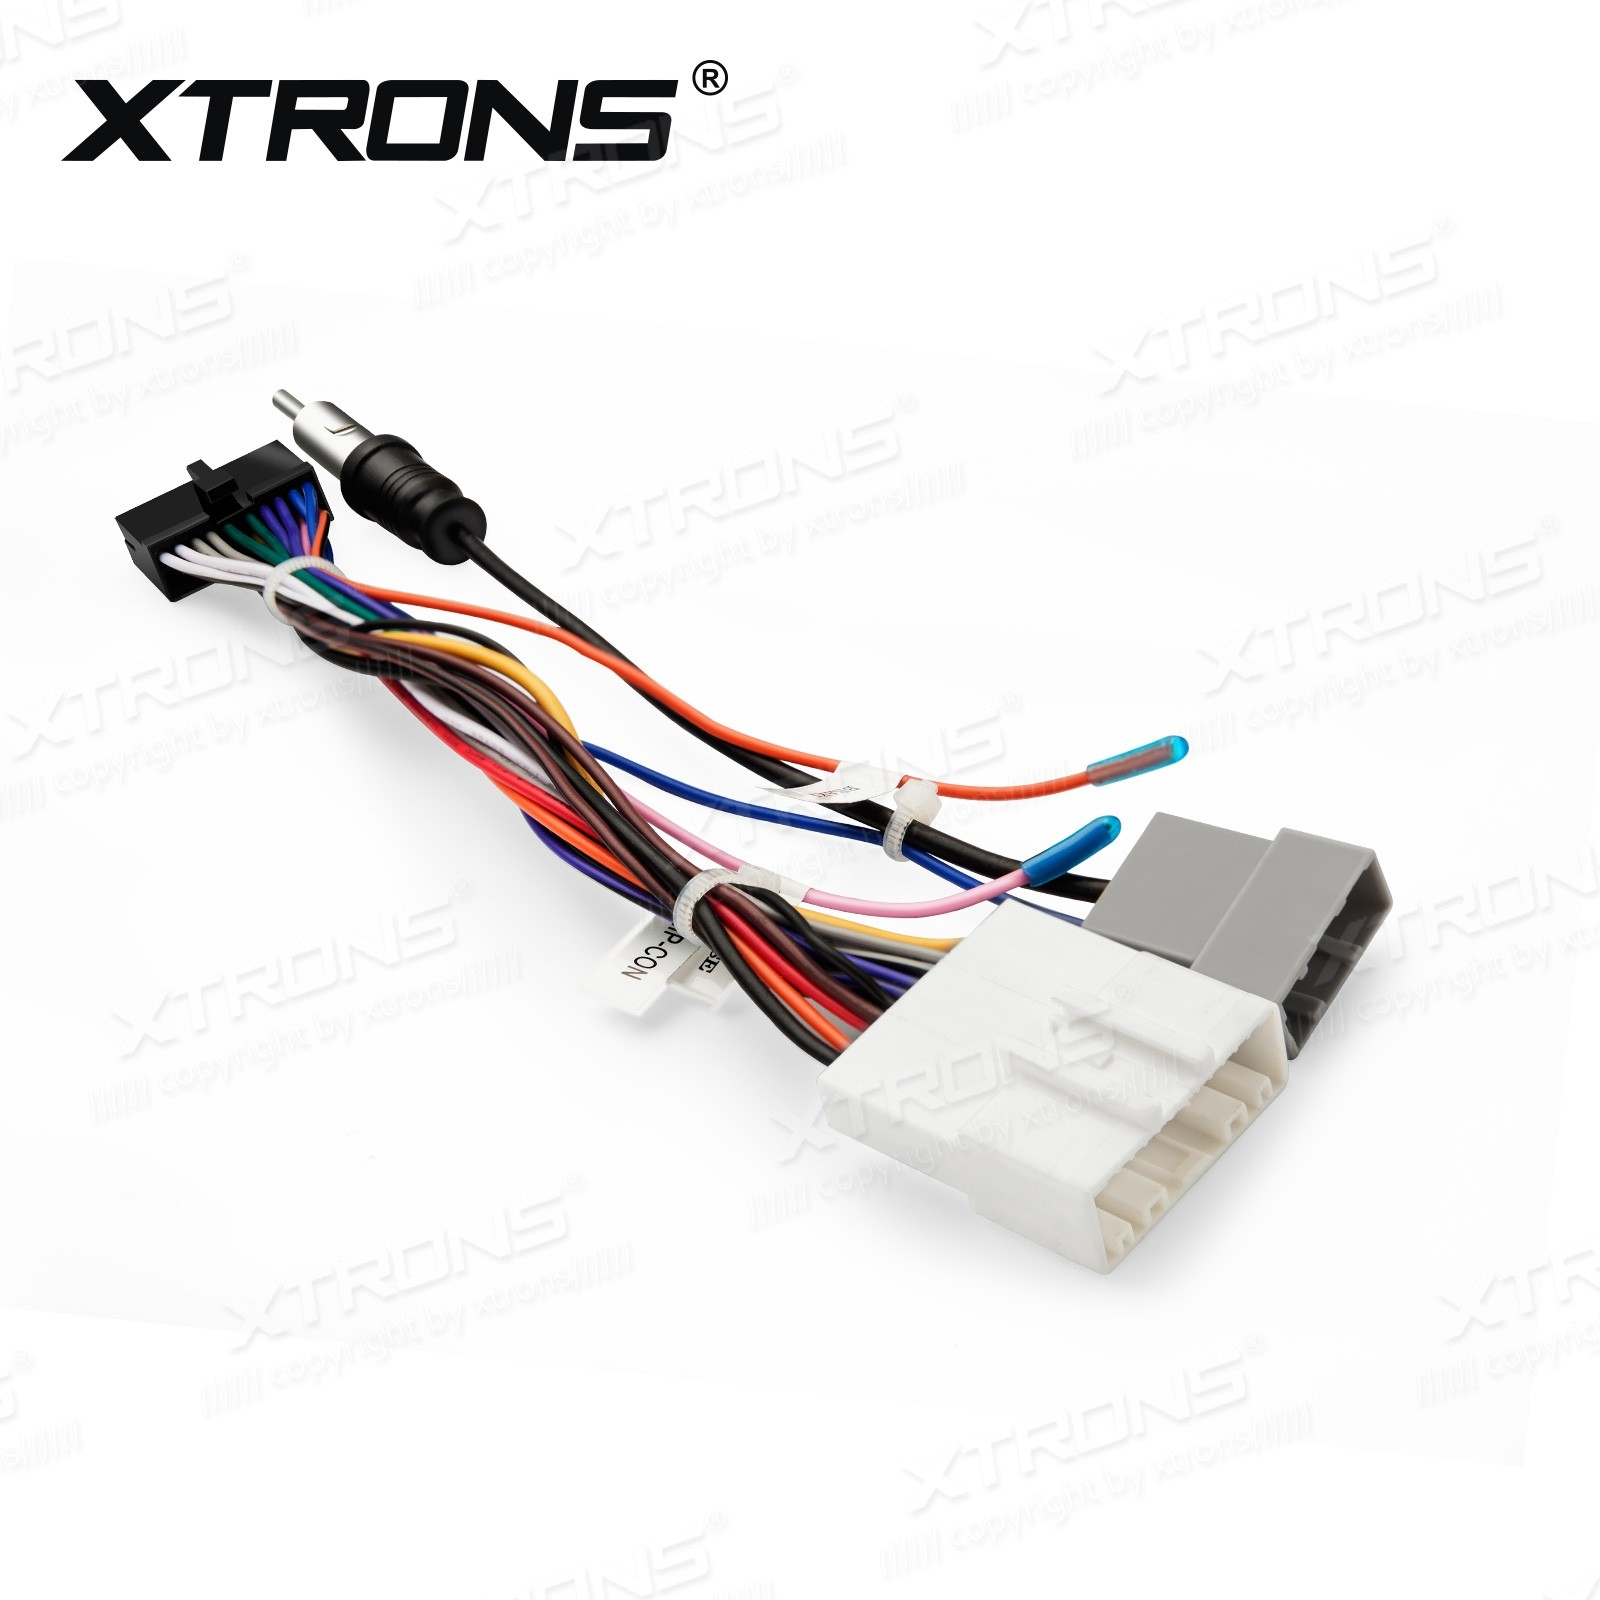 hight resolution of iso wiring harness cable for installation of xtrons td799dab td799g td623 td623dab in nissan cars car dvd wholesalers